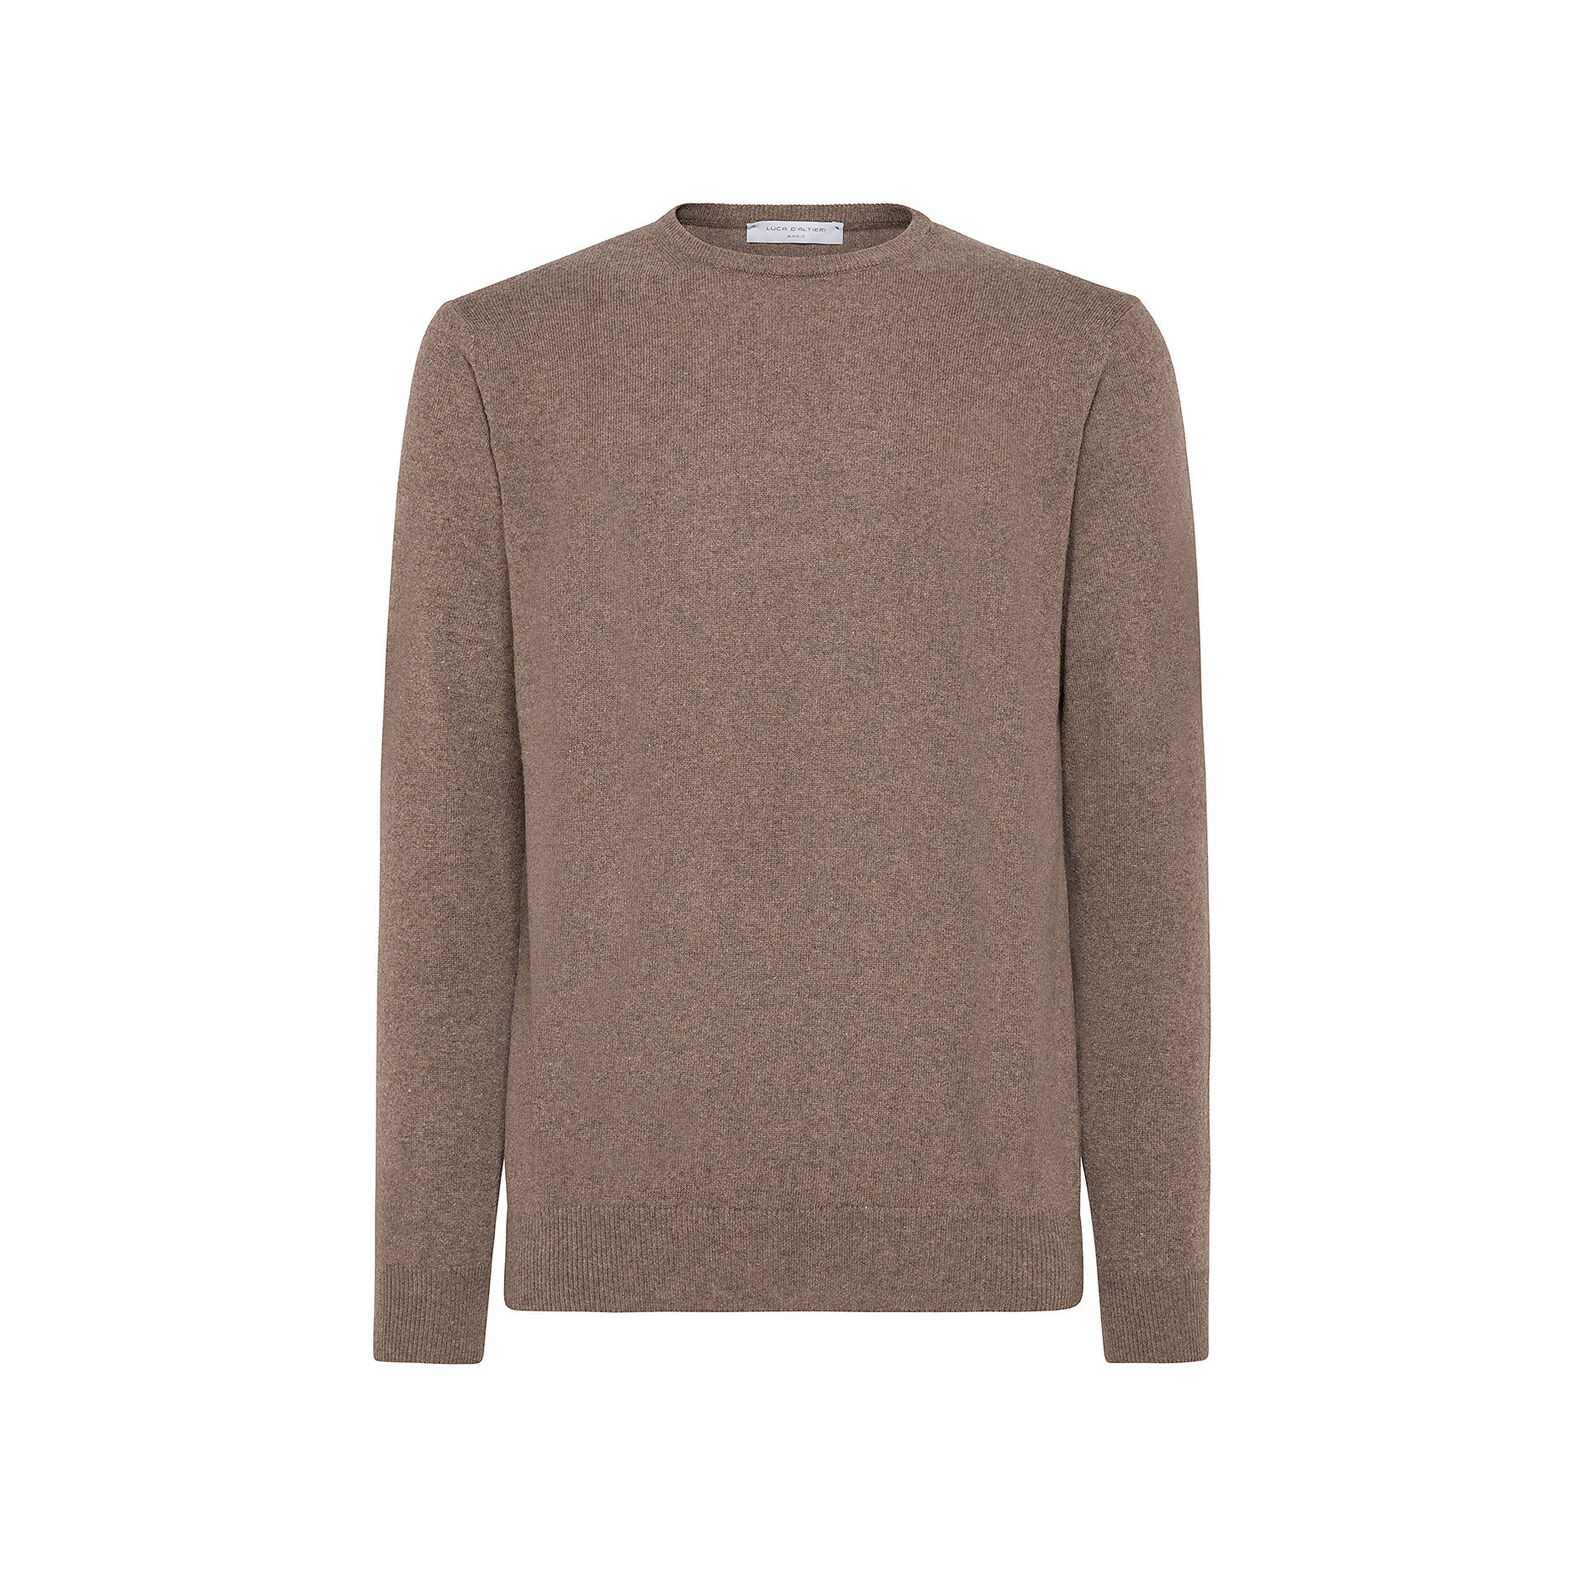 Cashmere blend pullover with round neck